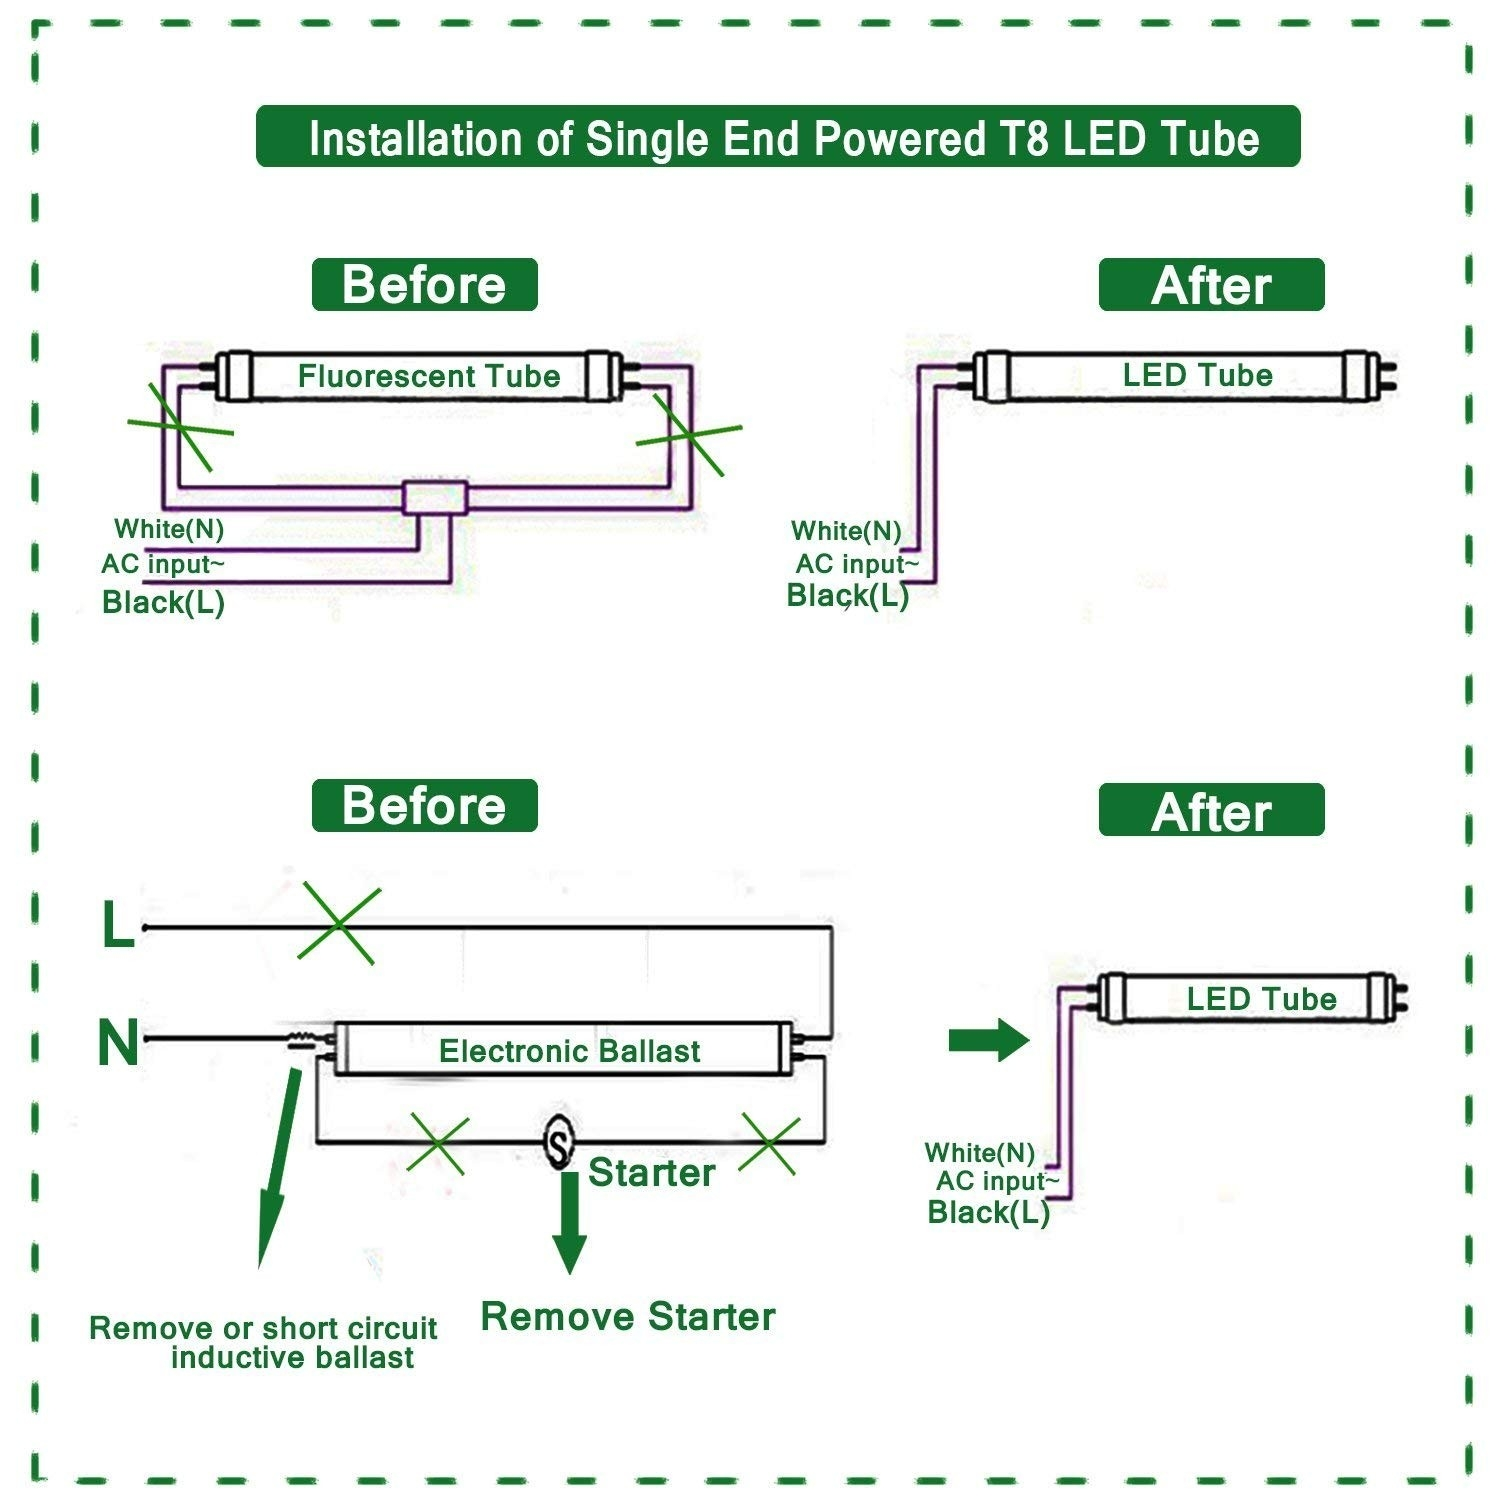 Led T8 Wiring Diagram 120v | Wiring Diagram Ballast For T Wiring Diagram on